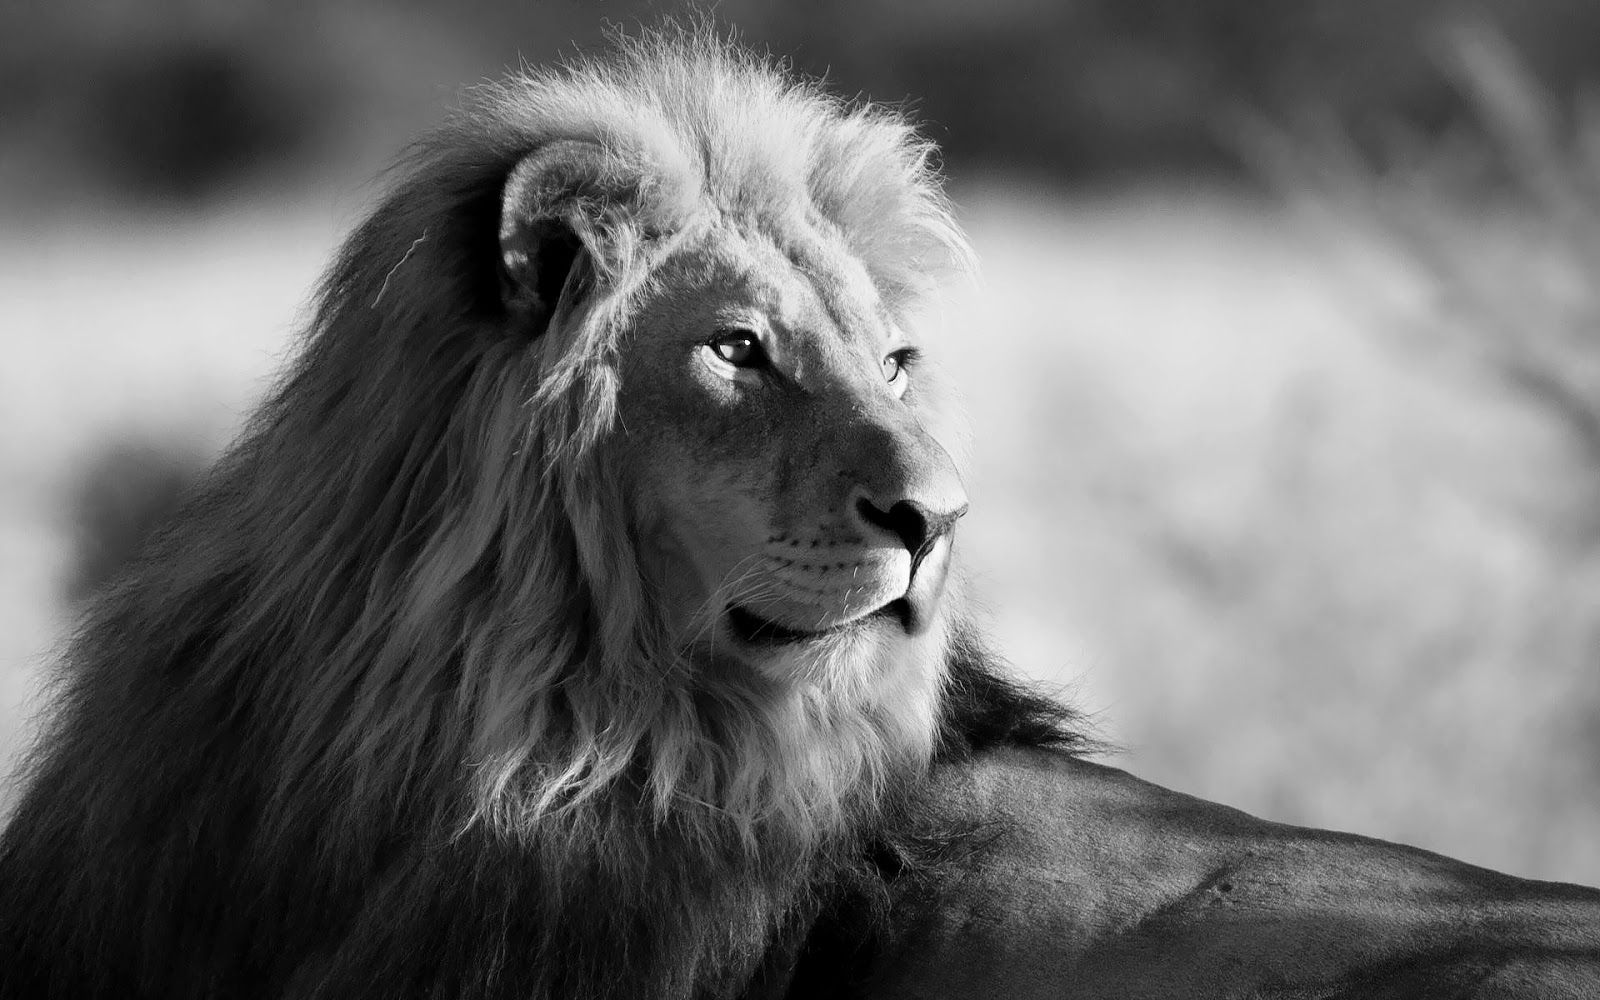 Lion black and white wallpaper designs